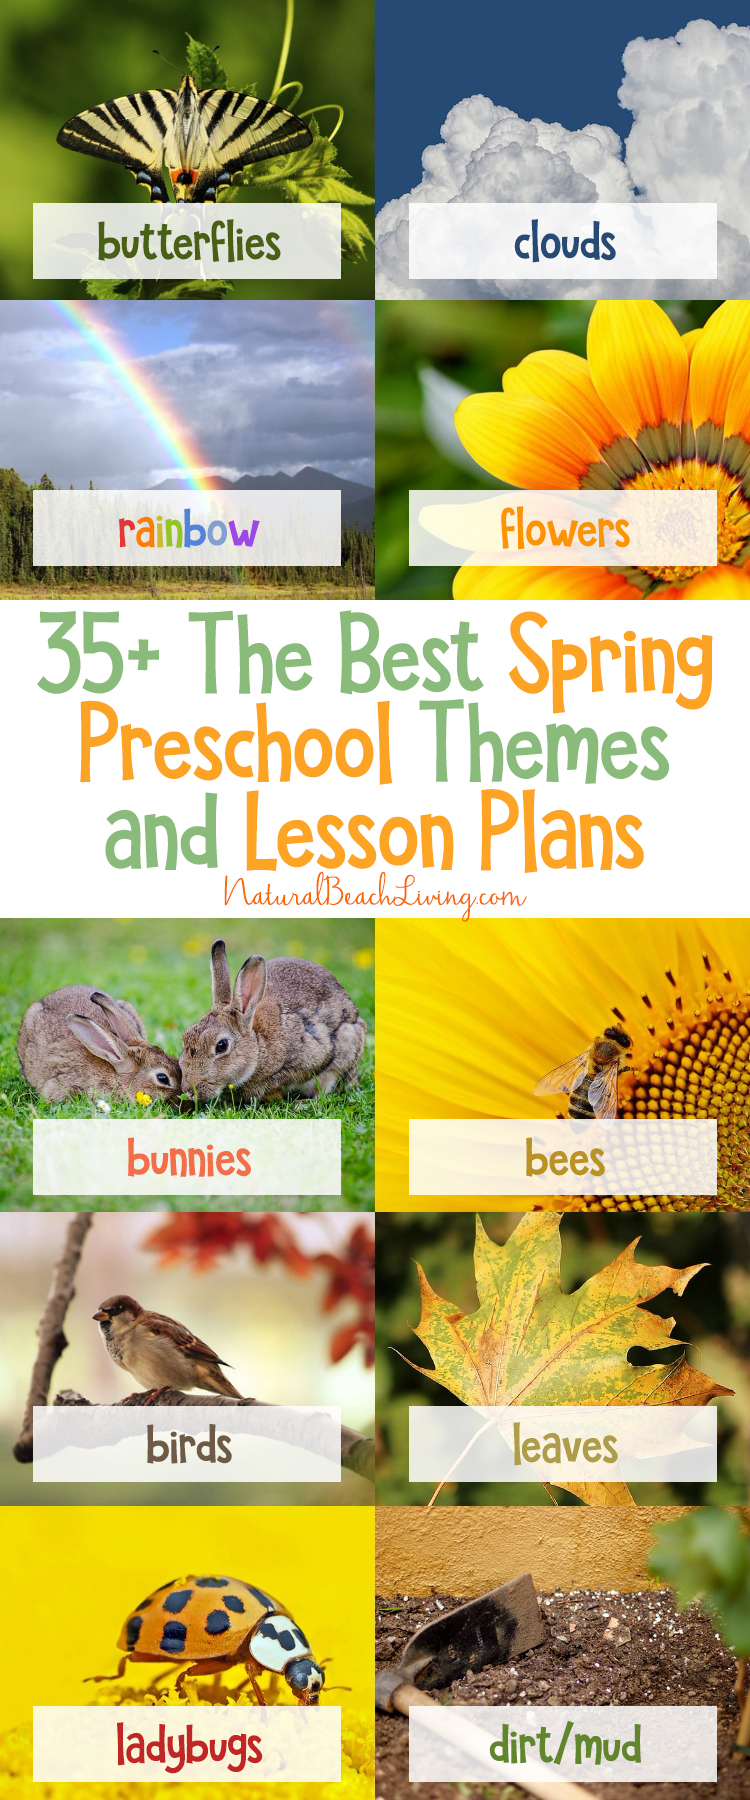 Best Preschool Themes for Spring